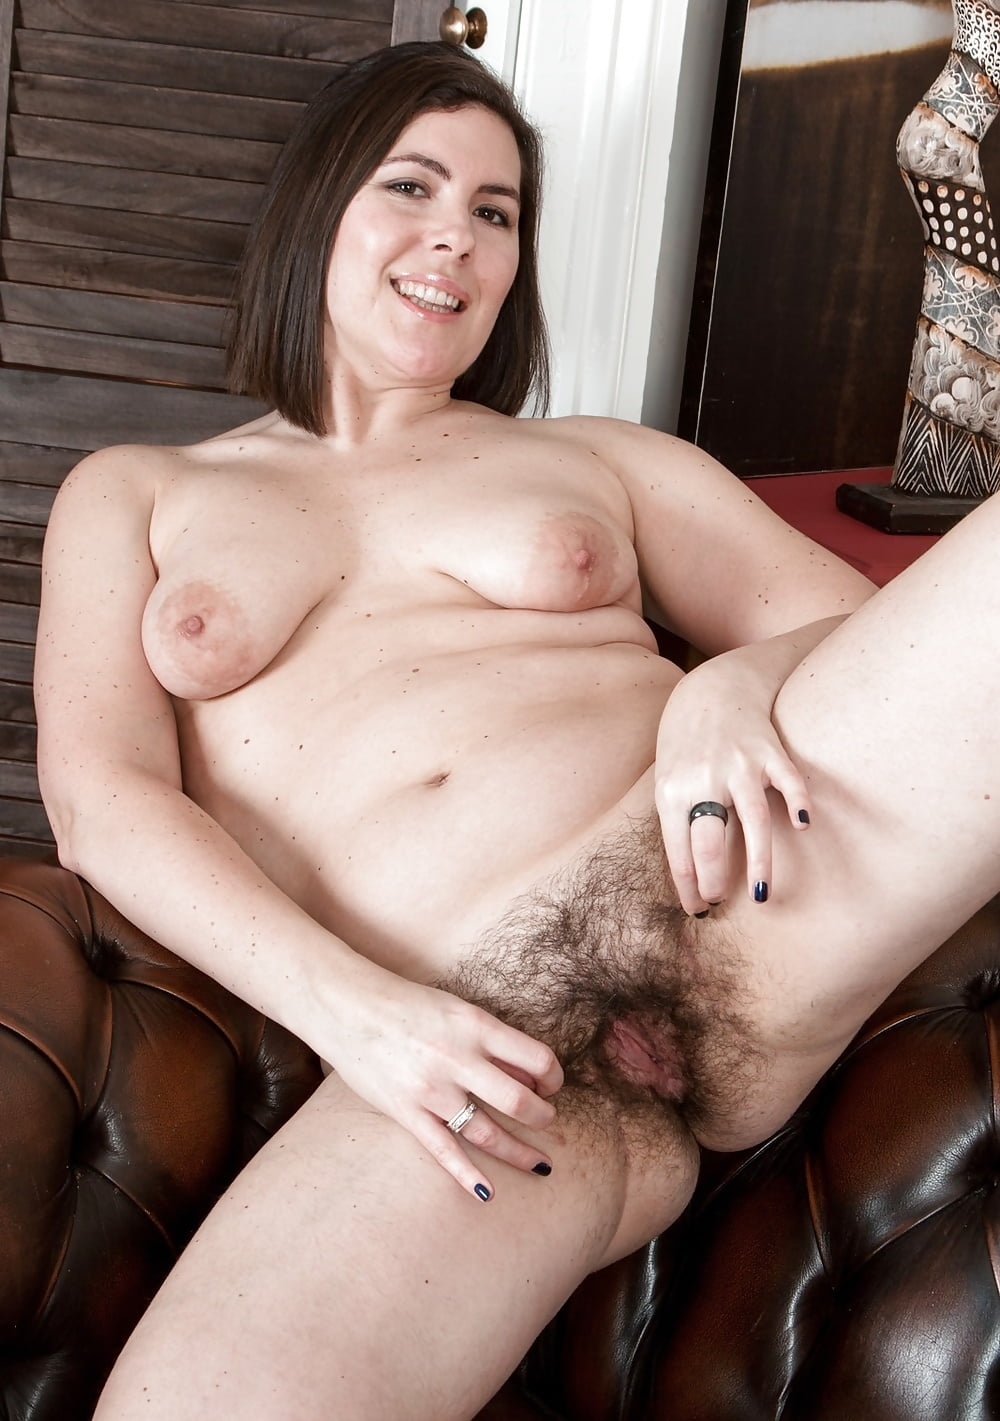 mature-shows-hairy-beaver-the-making-of-american-pie-naked-mile